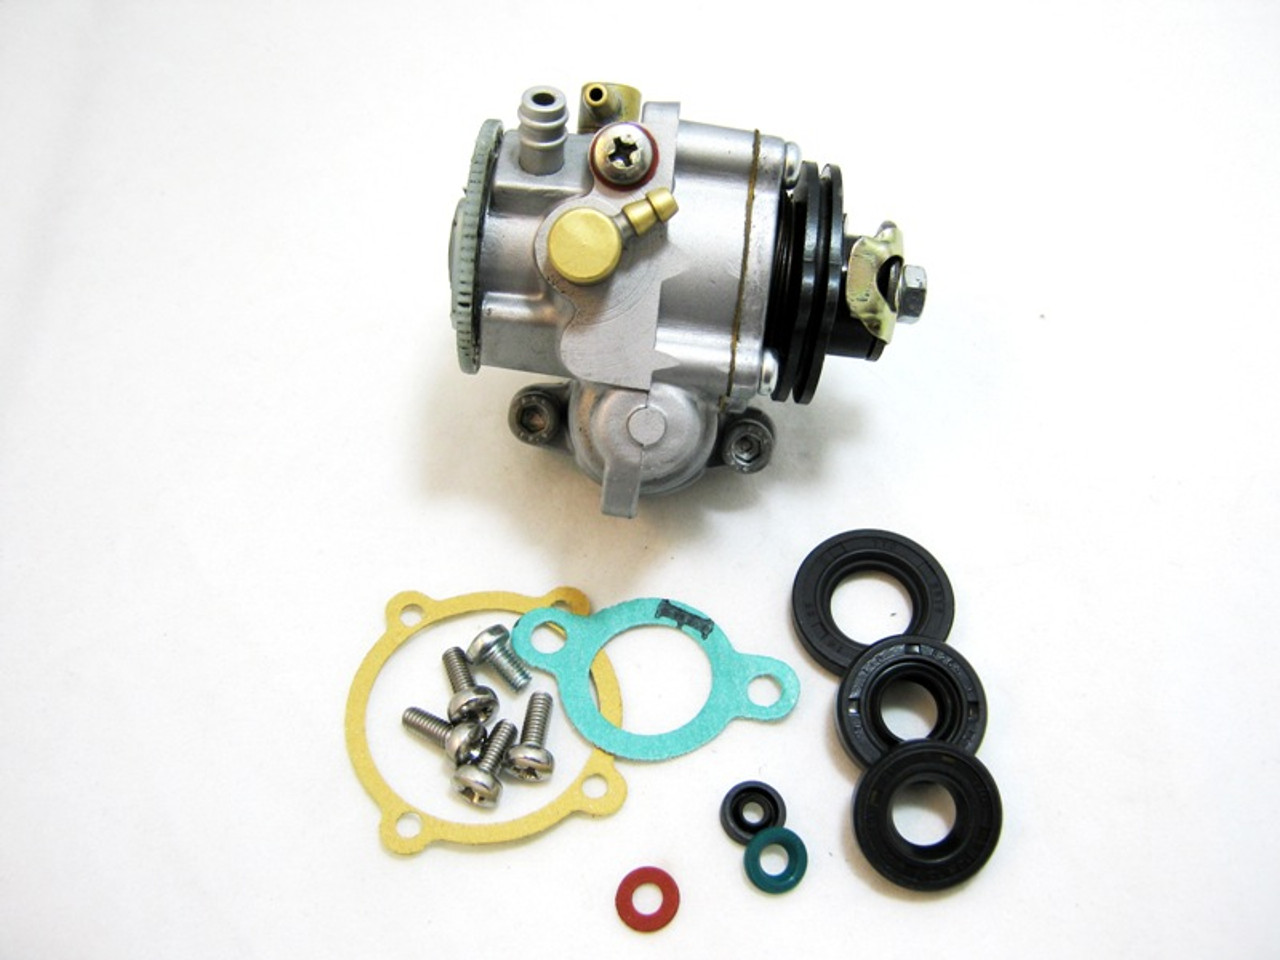 Yamaha Oil Injection Pump Re-Seal Kit, HVC200103